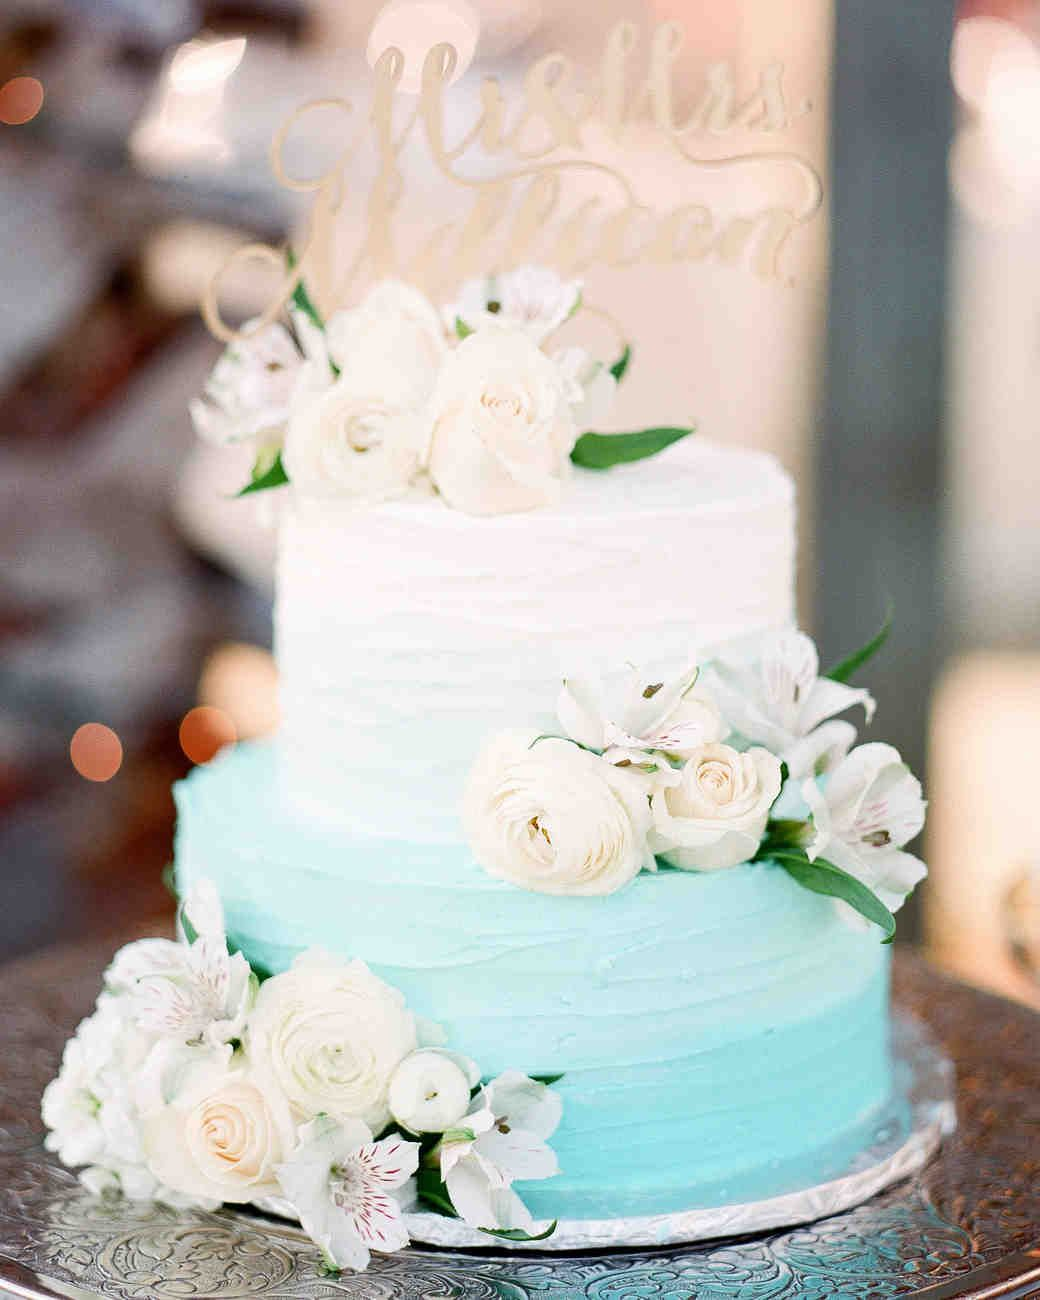 The Prettiest Ombre Wedding Cakes For Couples Who Love Color Small Wedding Cakes Floral Wedding Cakes Beach Wedding Cake